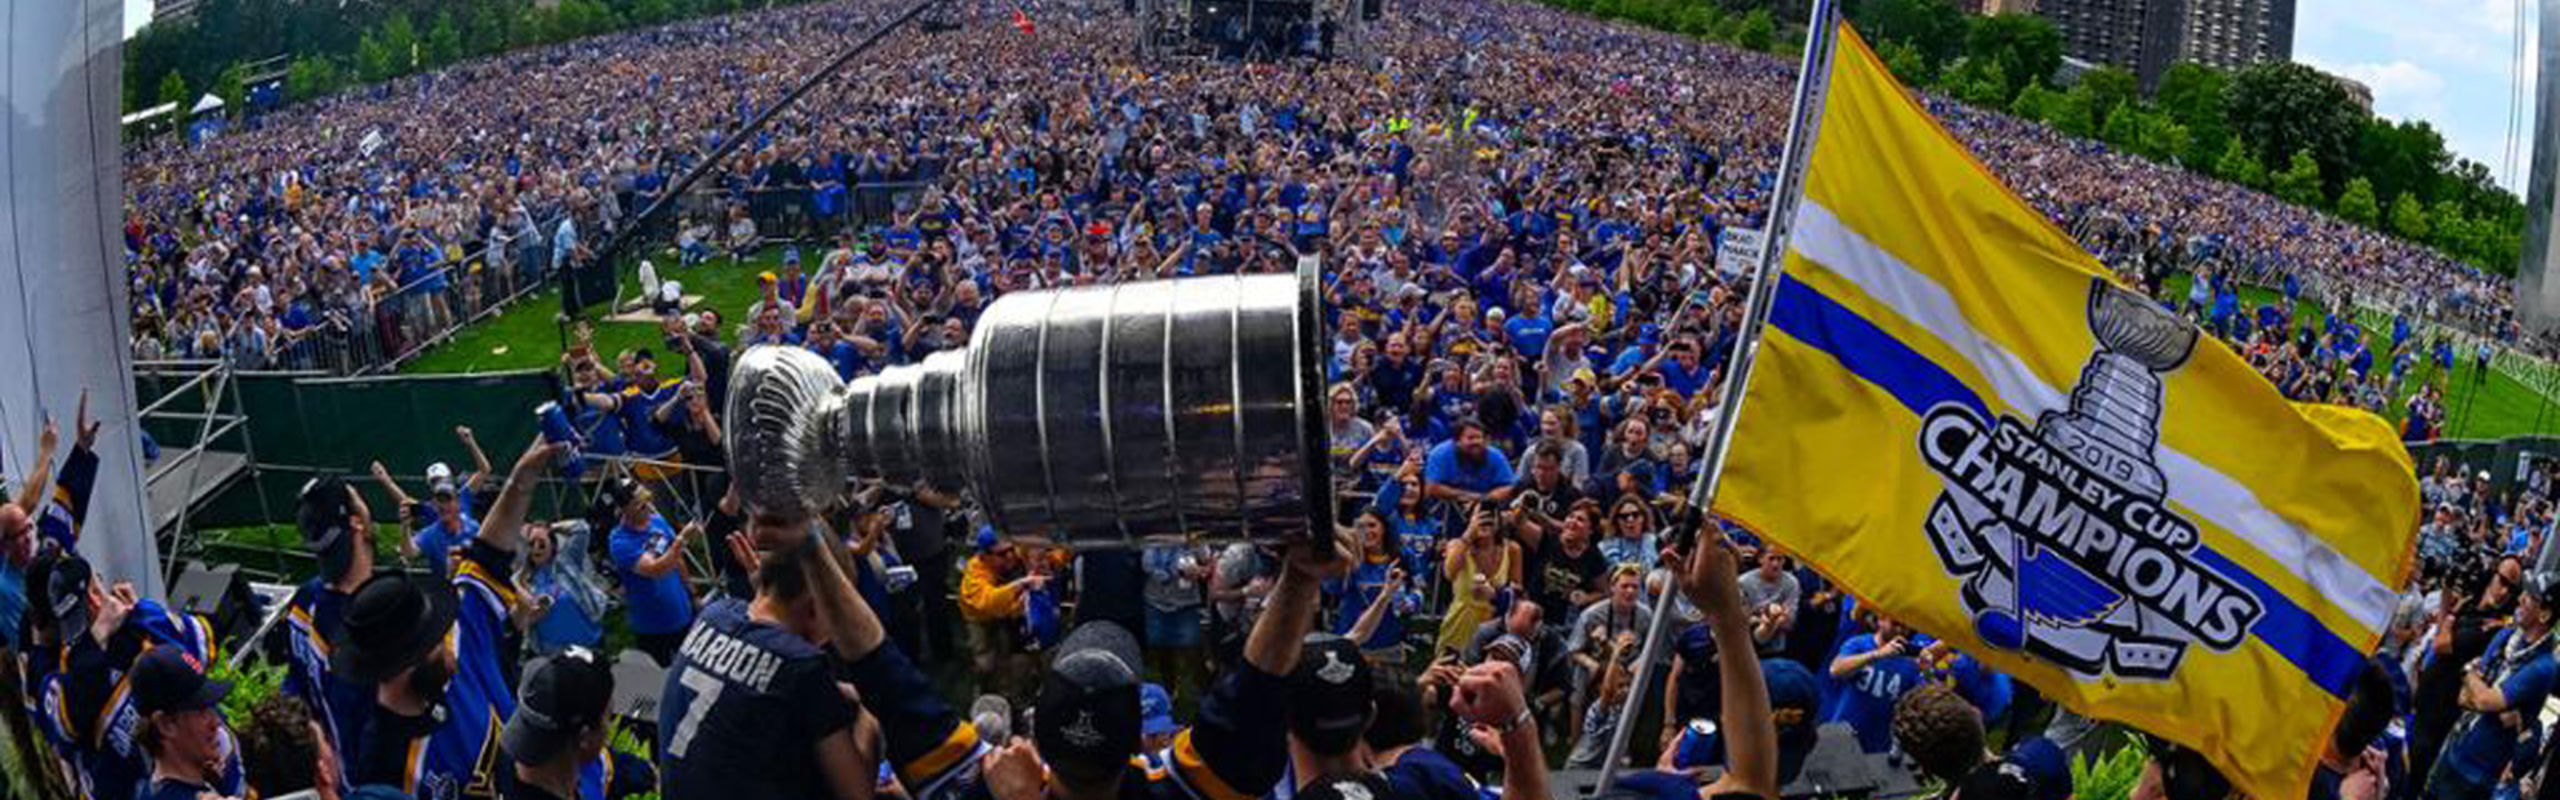 2019 Stanley Cup Champion St. Louis Blues